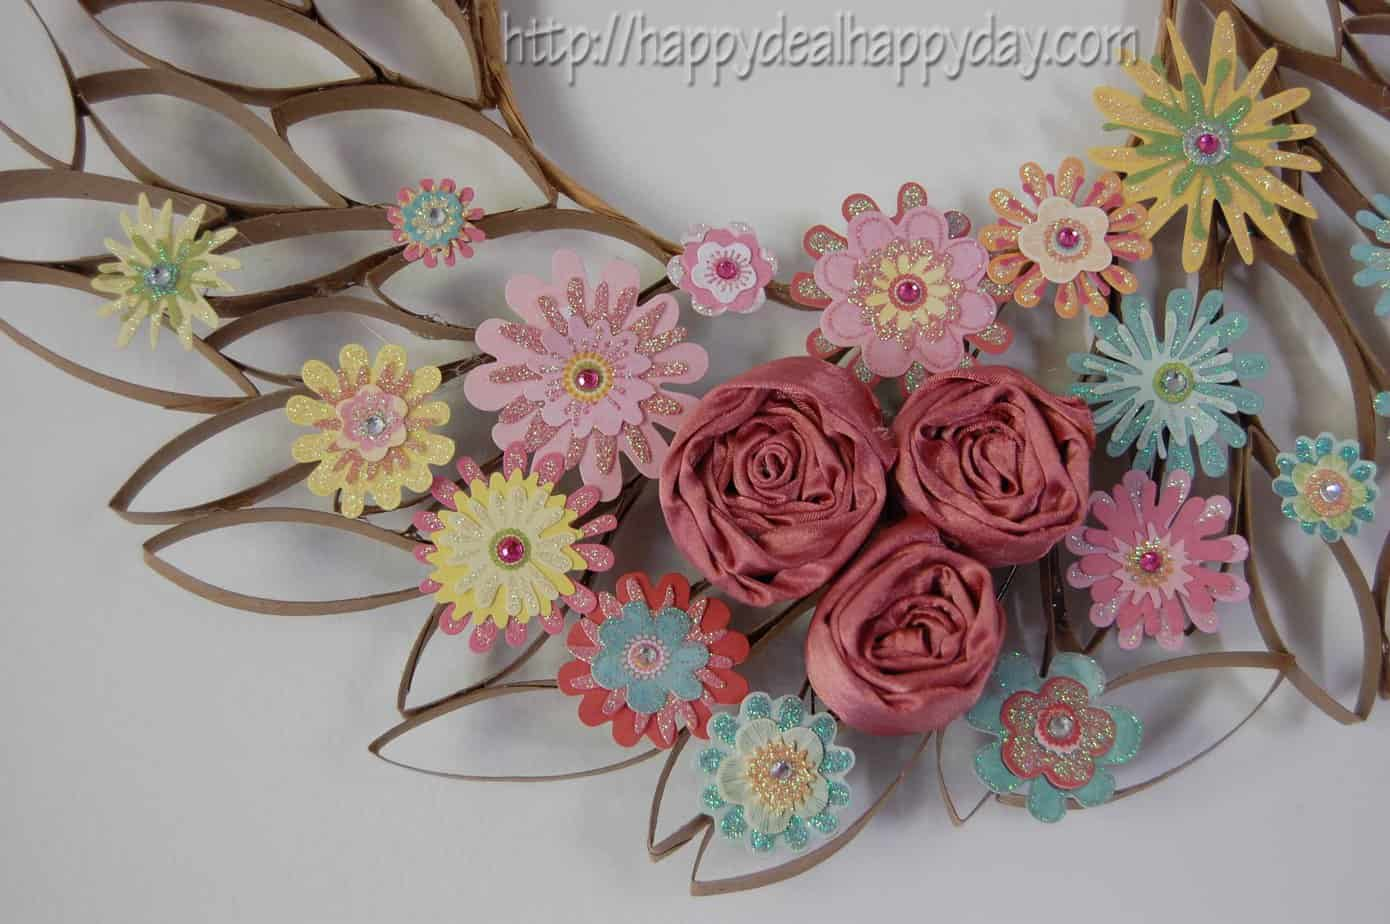 Toilet paper roll crafts toilet paper roll wreath happy deal toilet paper roll craft toilet paper roll wreath frugal craft projects toilet paper mightylinksfo Choice Image